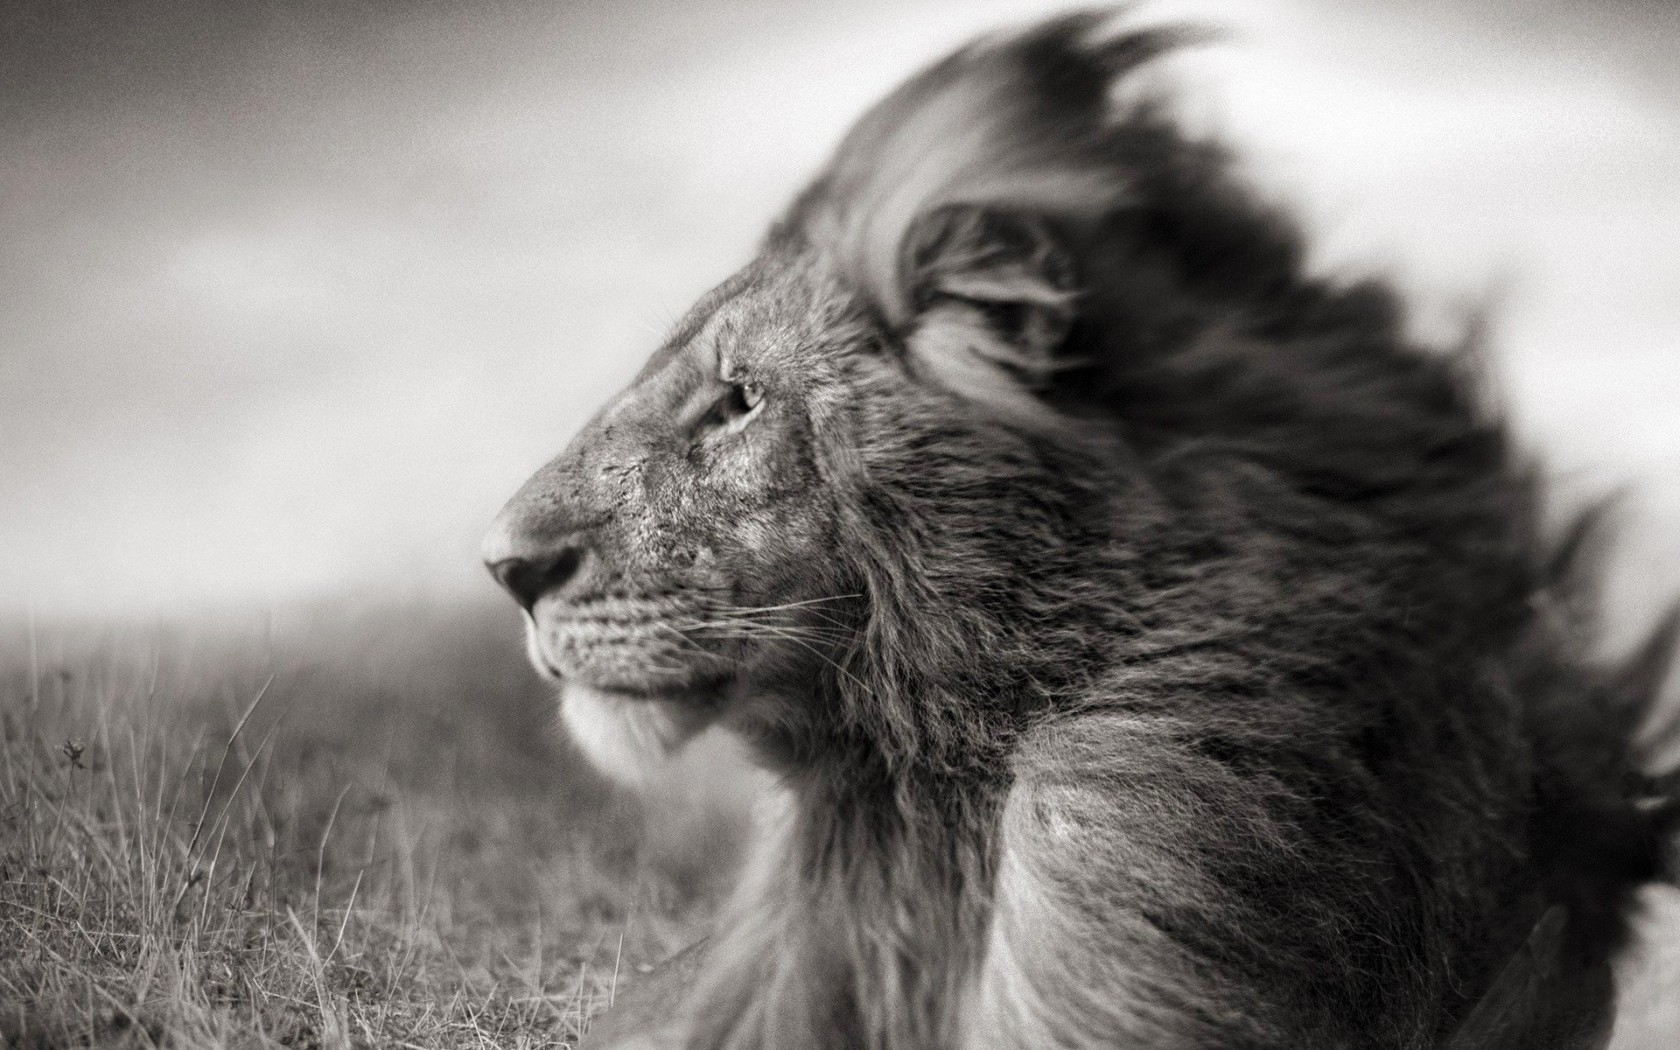 Portrait Of A Lion In Black And White Wallpaper for Desktop 1680x1050